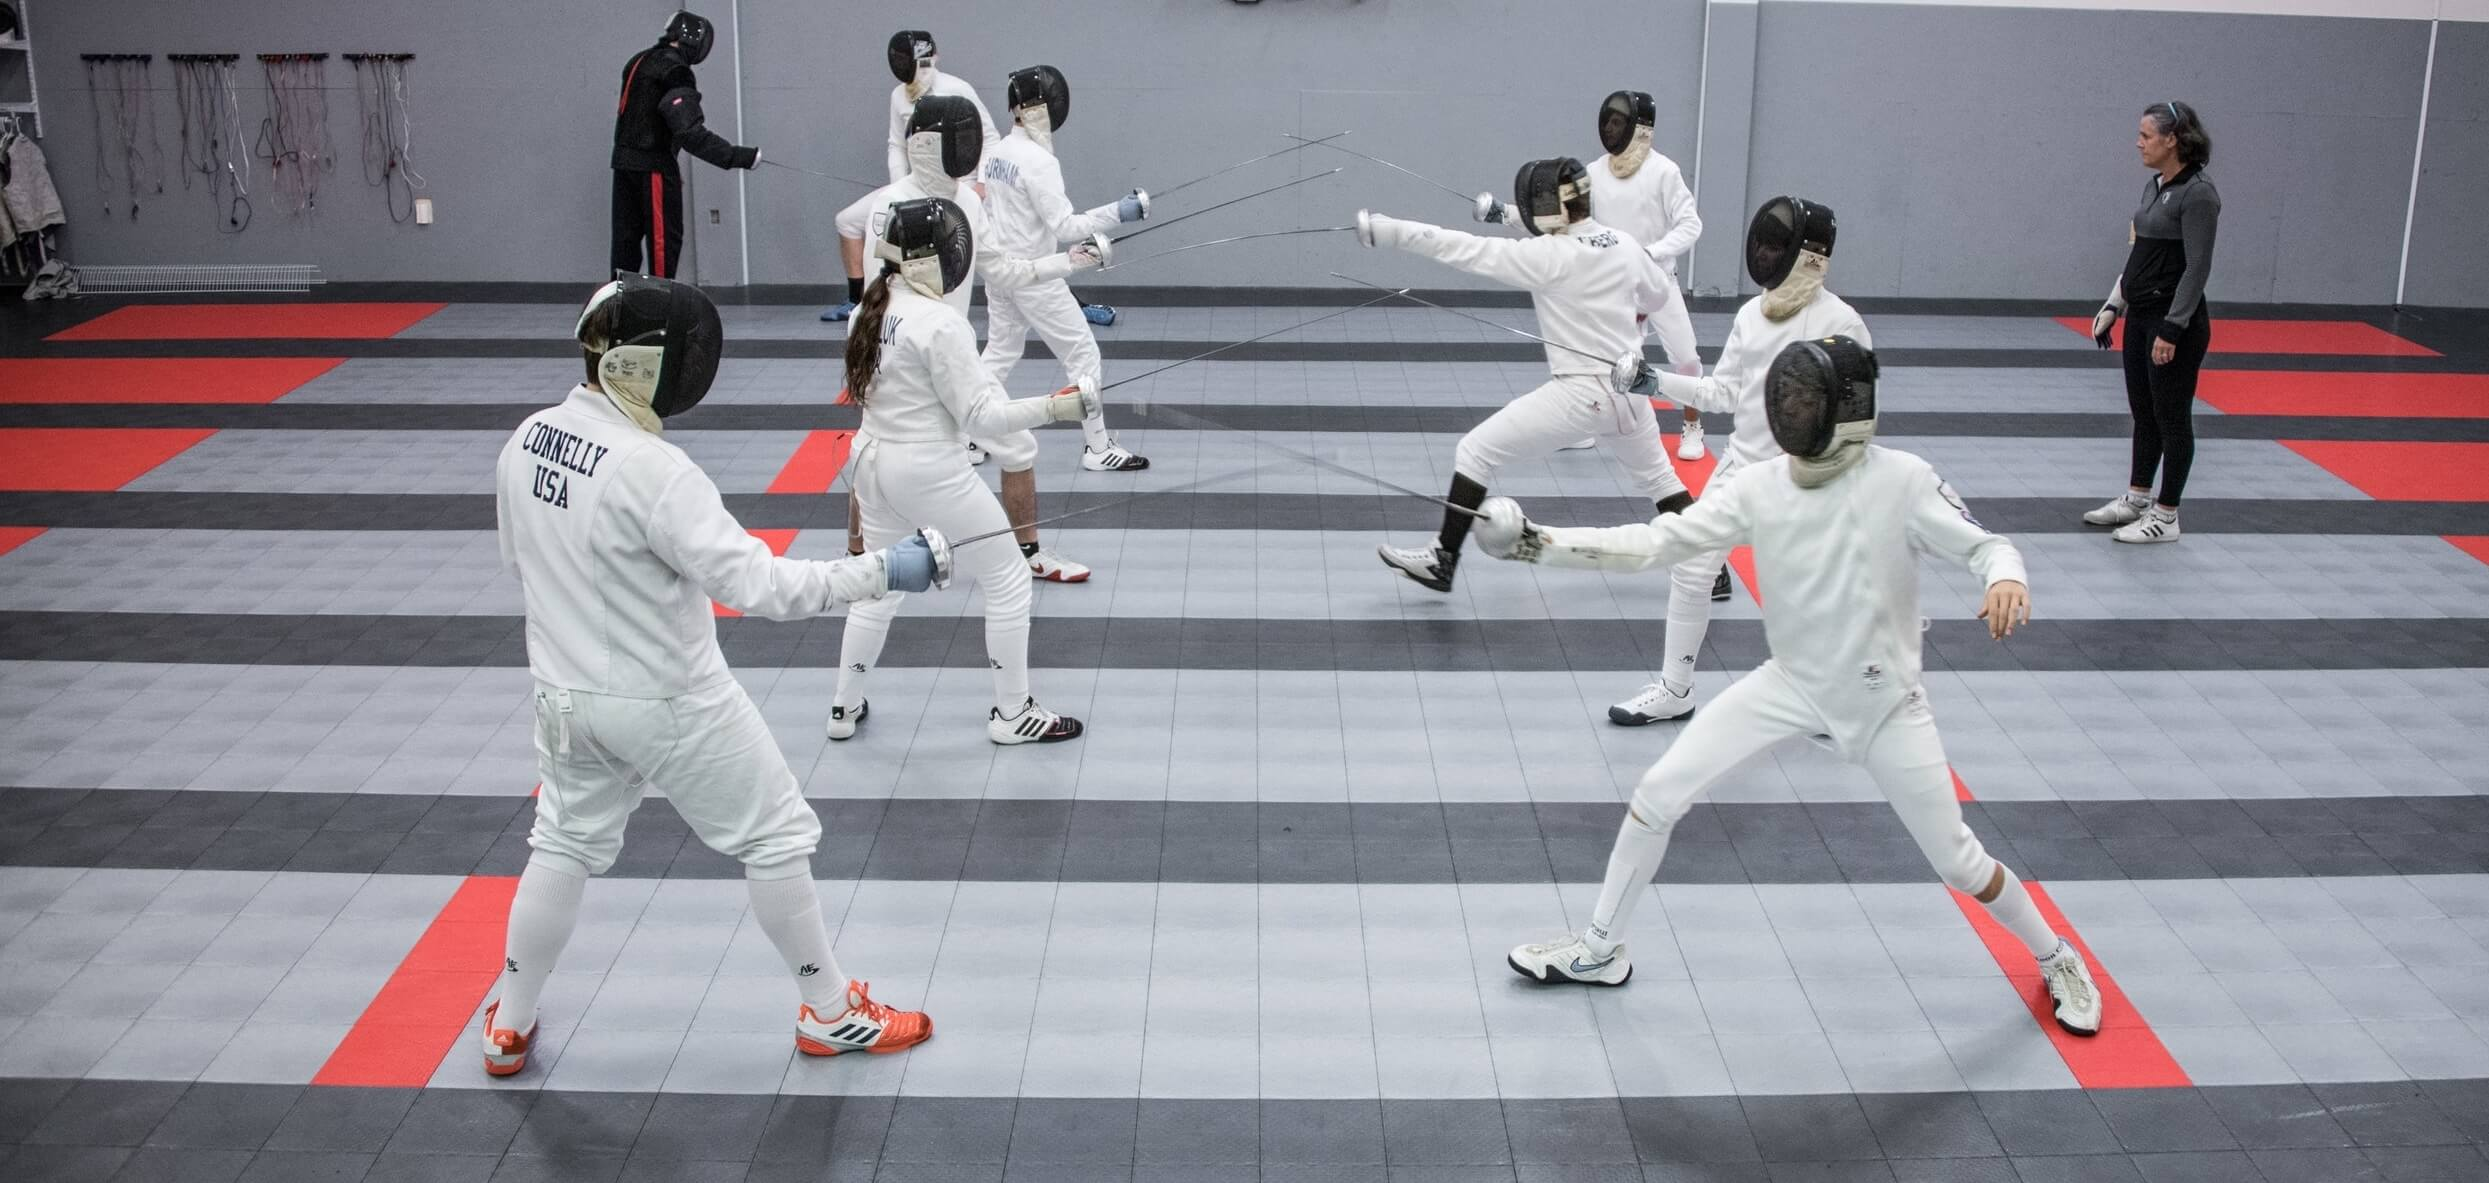 How to Play Fencing Sport